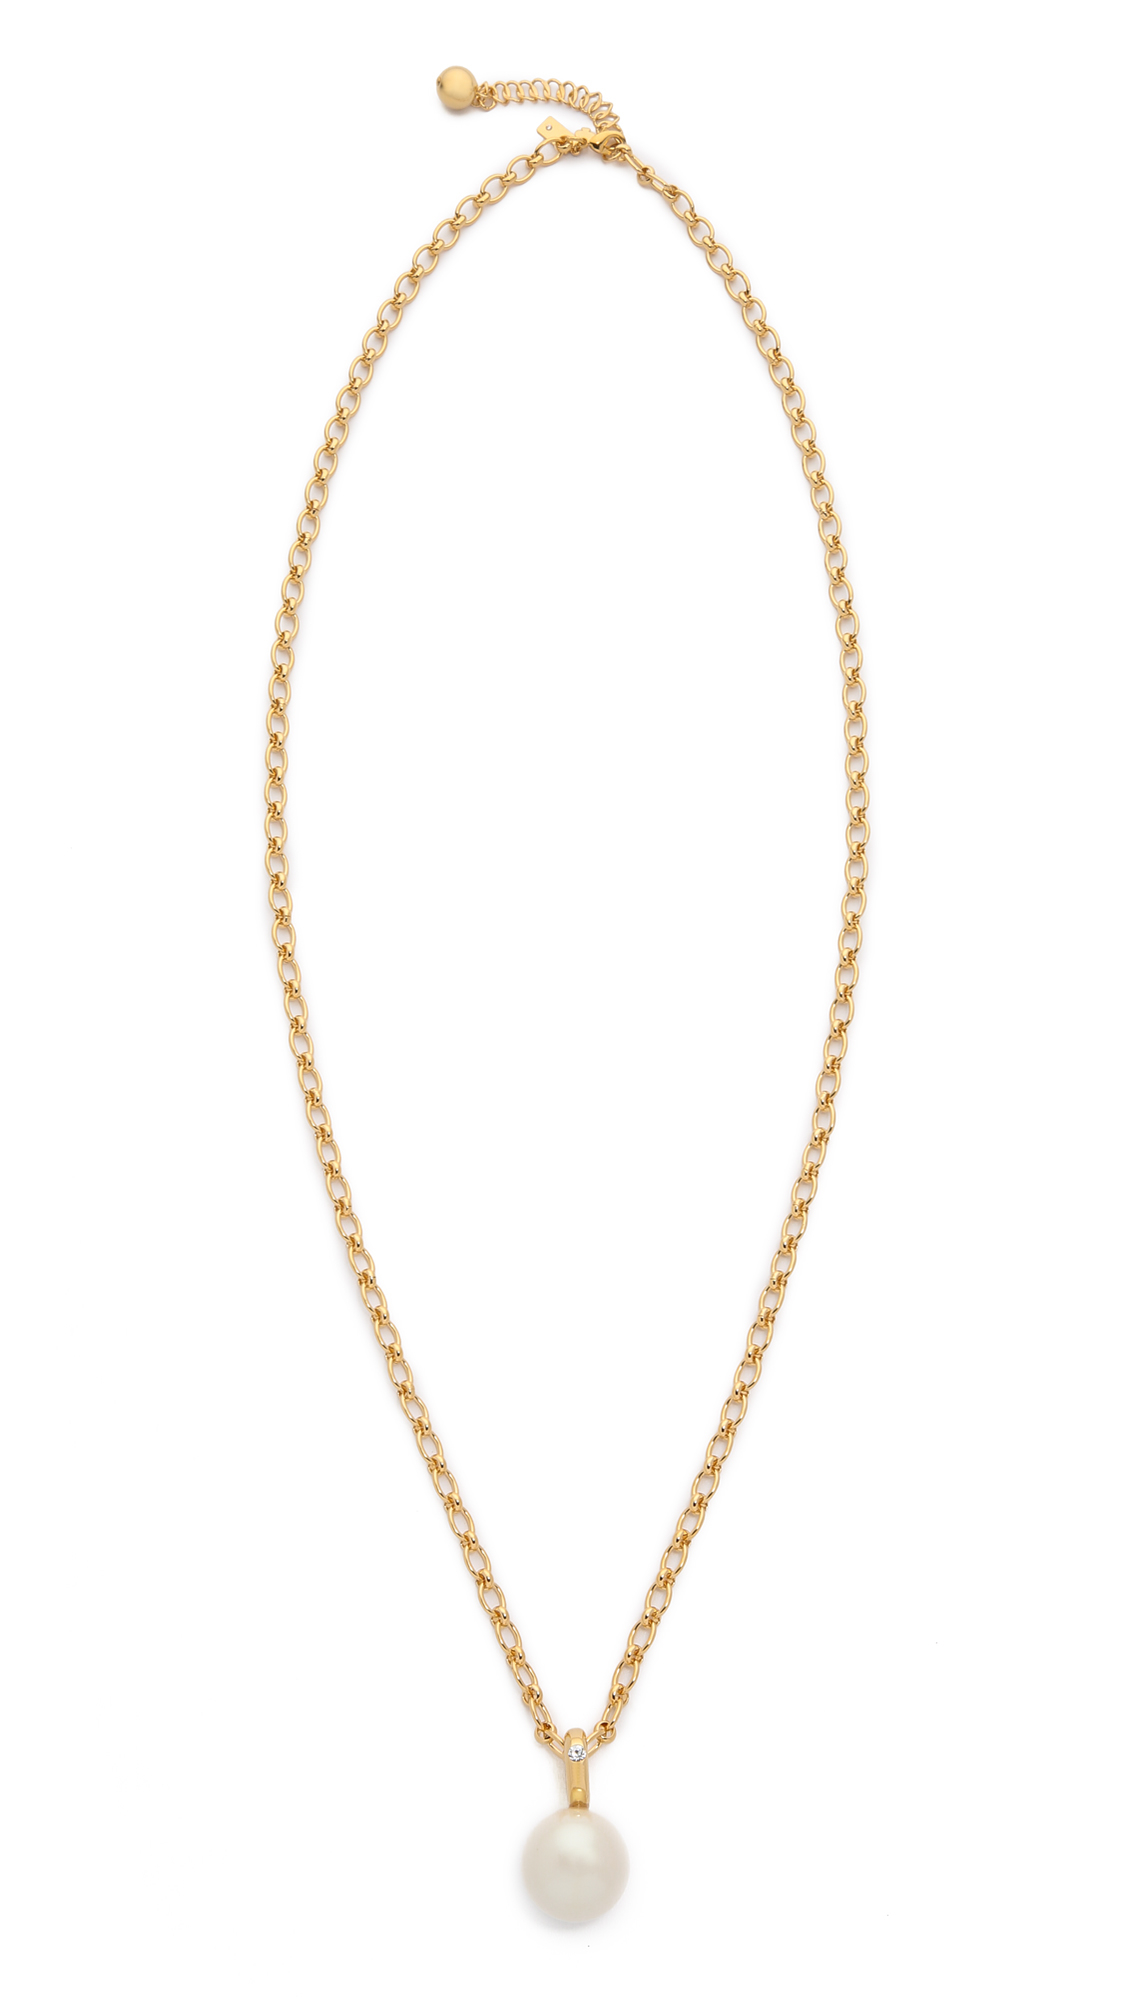 Kate spade new york Pearly Delight Long Pendant Necklace - Cream Multi in Natural | Lyst